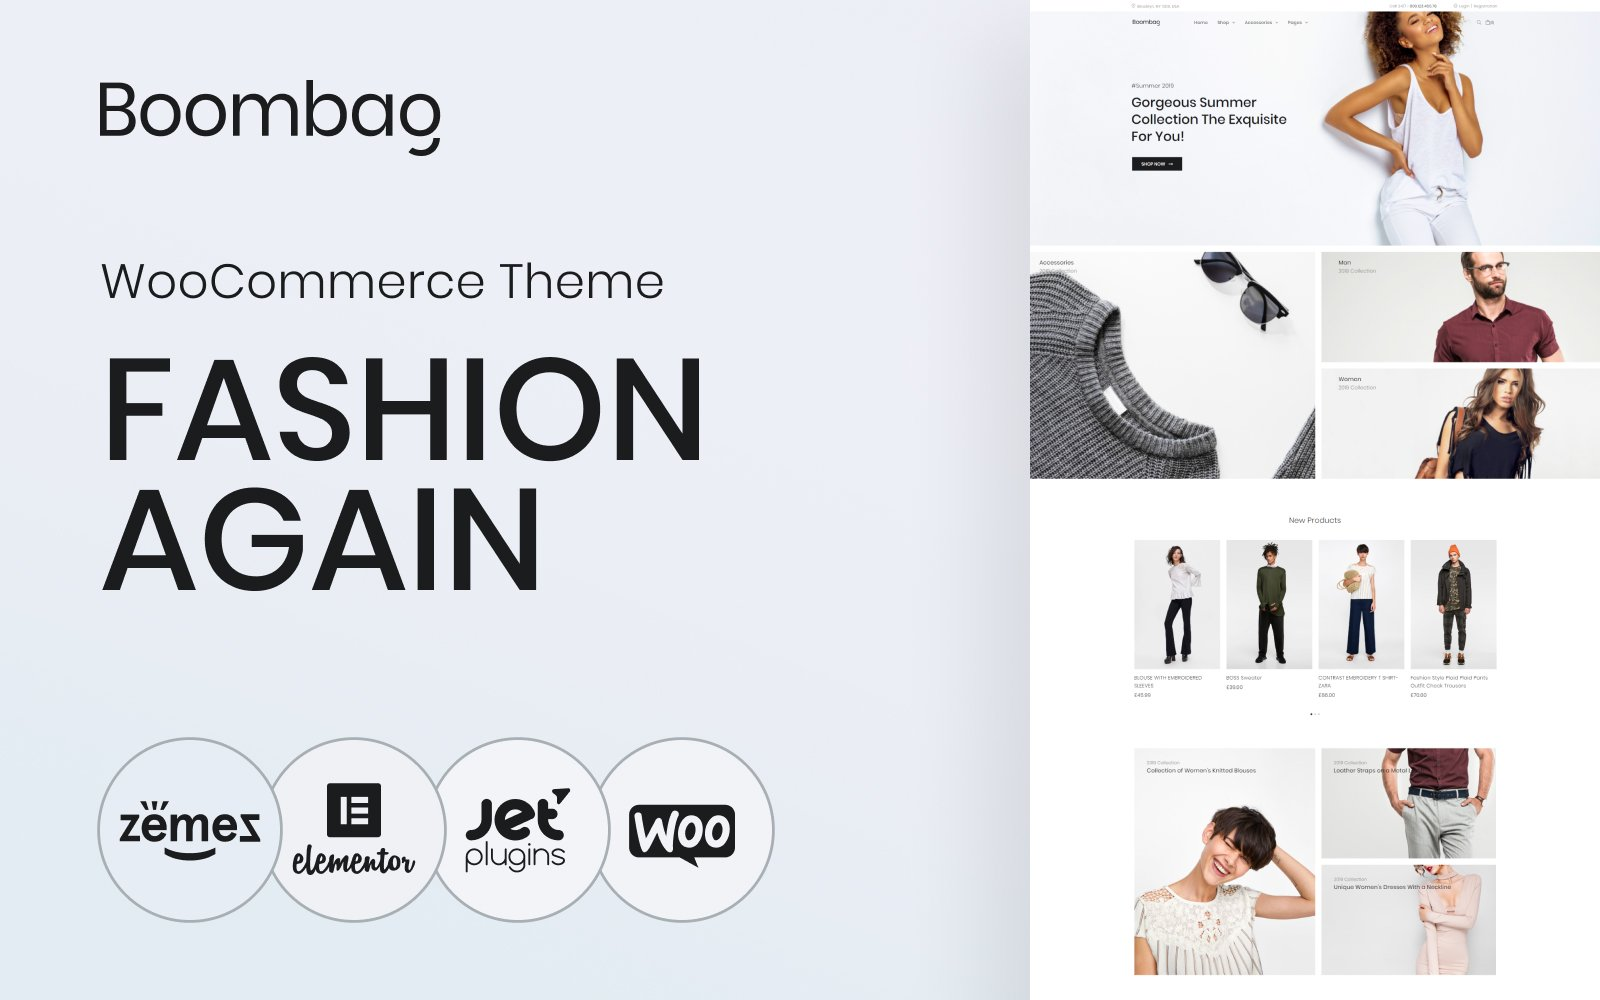 Boombag - Apparel ECommerce Modern Elementor WooCommerce Theme